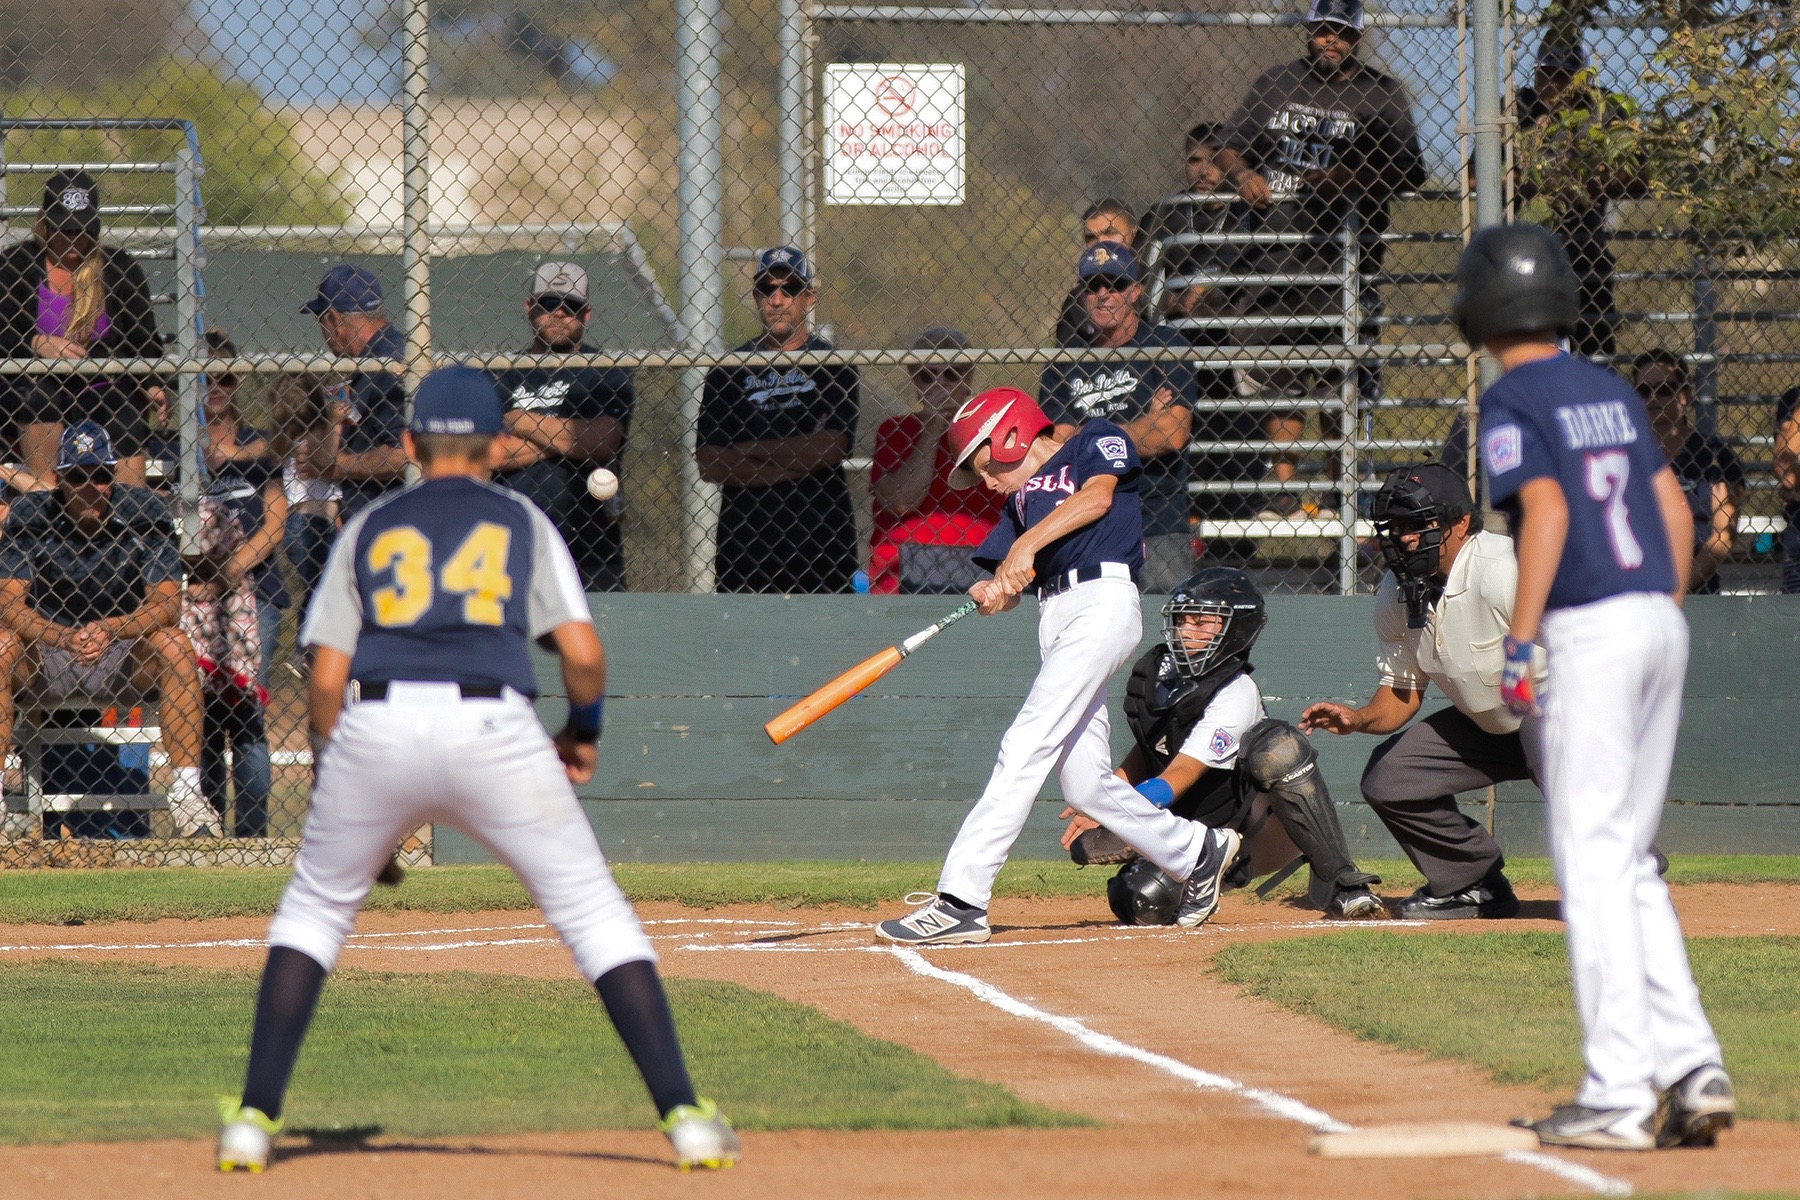 Goleta Valley's Michael Luckhurst smacks a three-run homer duirng the second inning of Tuesday's District 63 final against Dos Pueblos at Girsh Park.